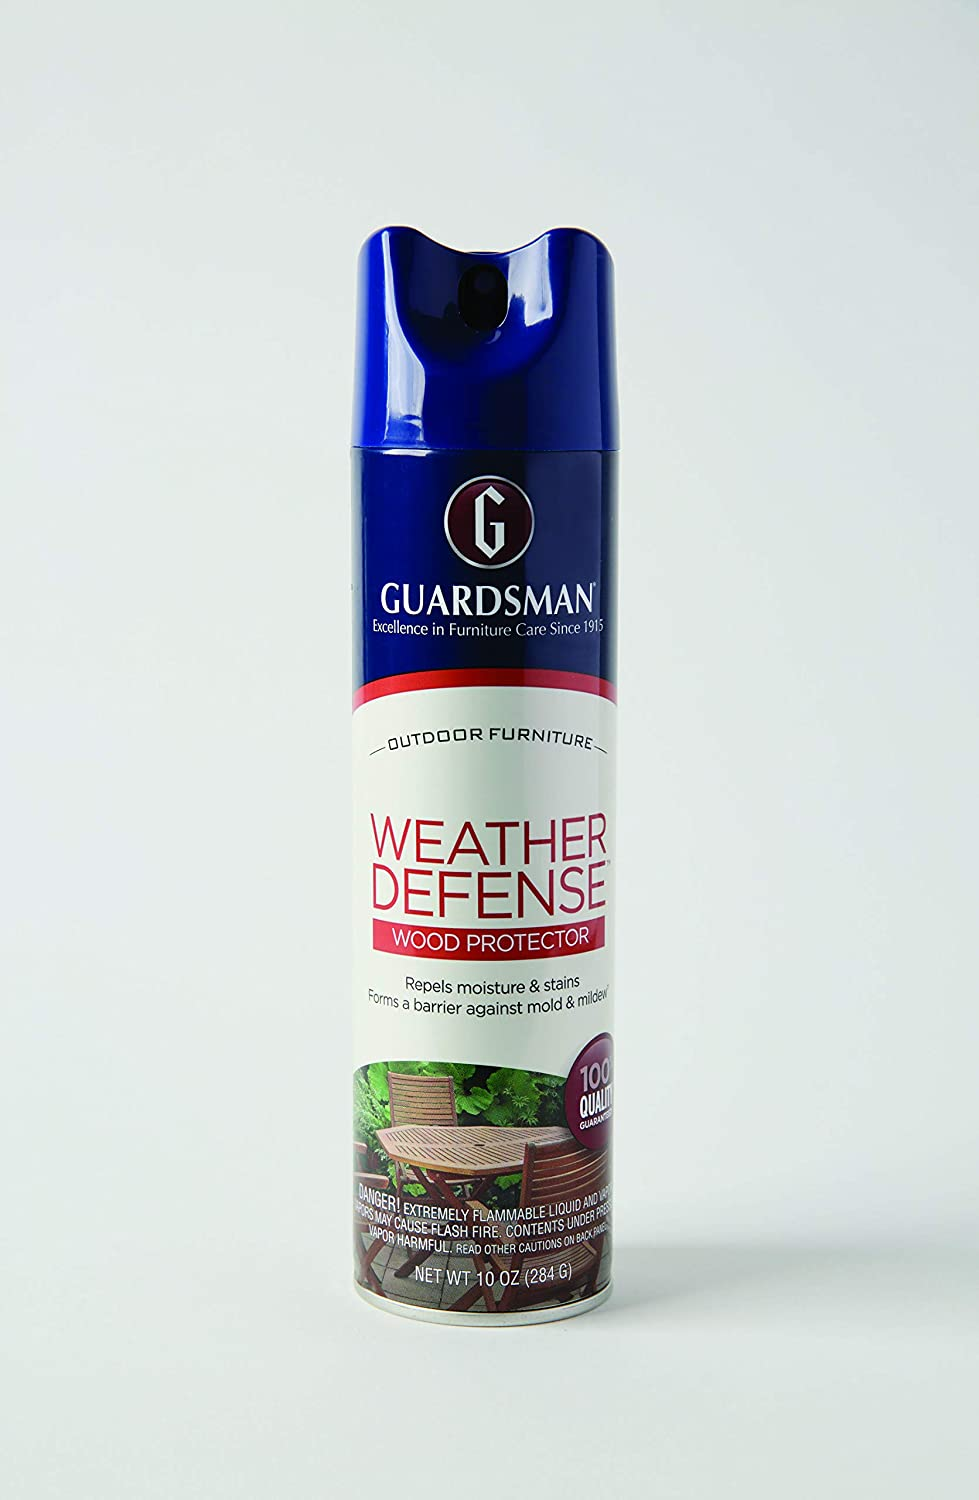 Guardsman 461900 Weather Defense Outdoor Wood Furniture Protector - Repels Moisture and Stains, 10 Oz, 10 Fl Oz